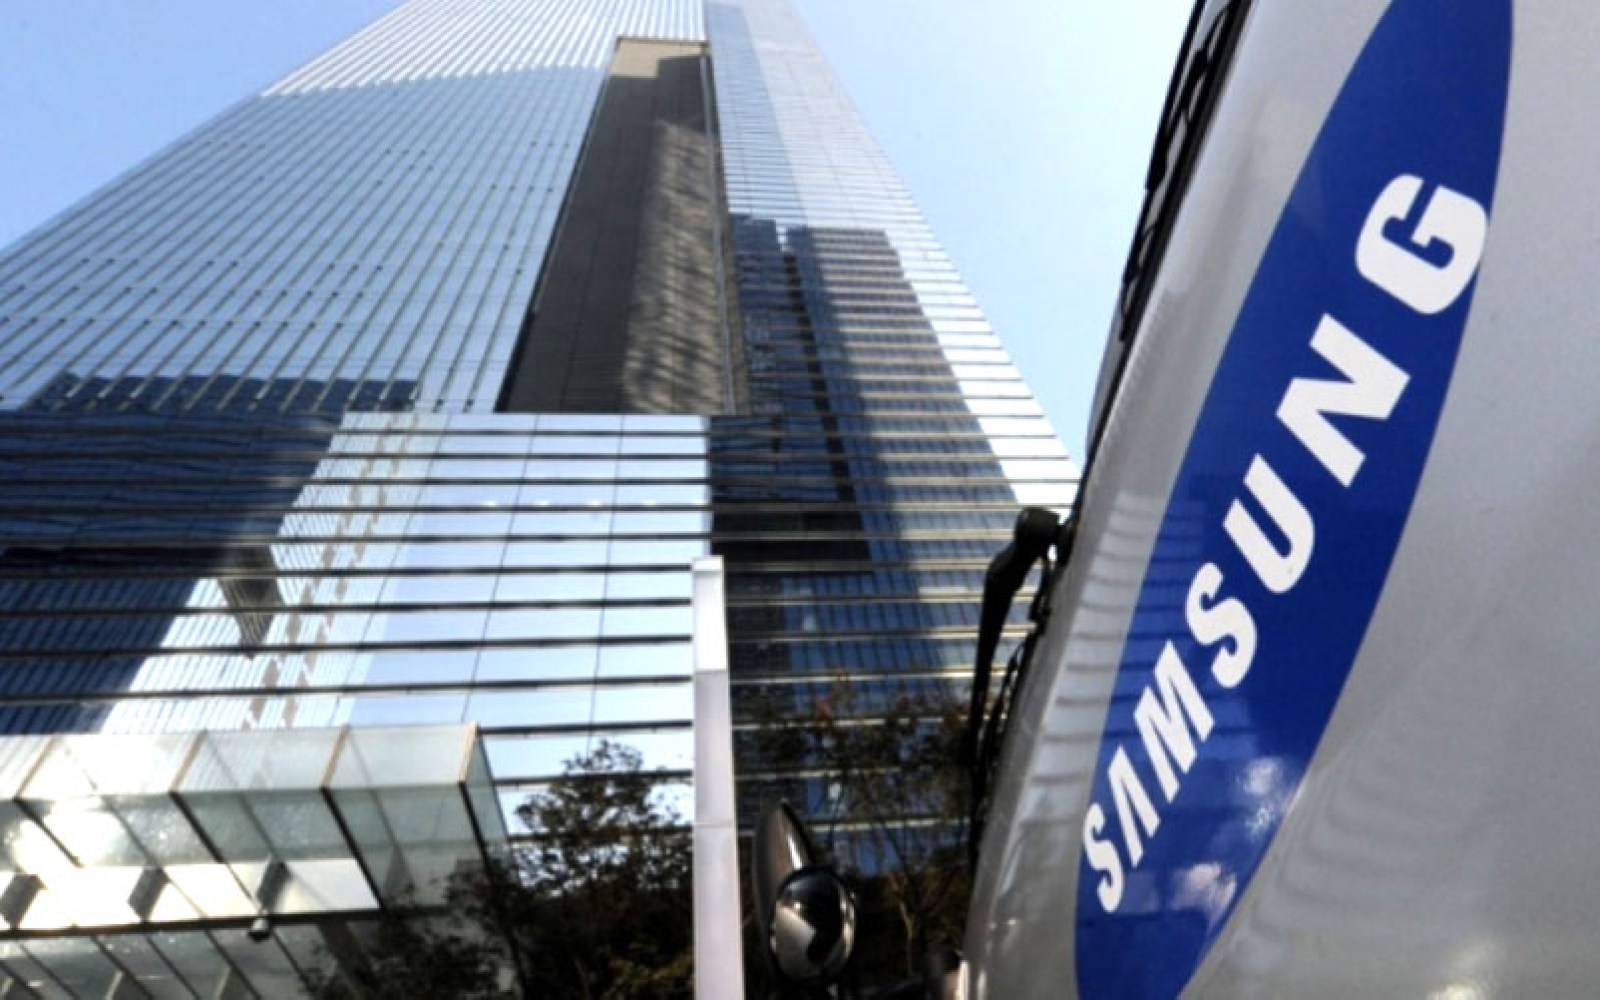 Following loss of Apple business, Samsung planning to spin off chip-making division